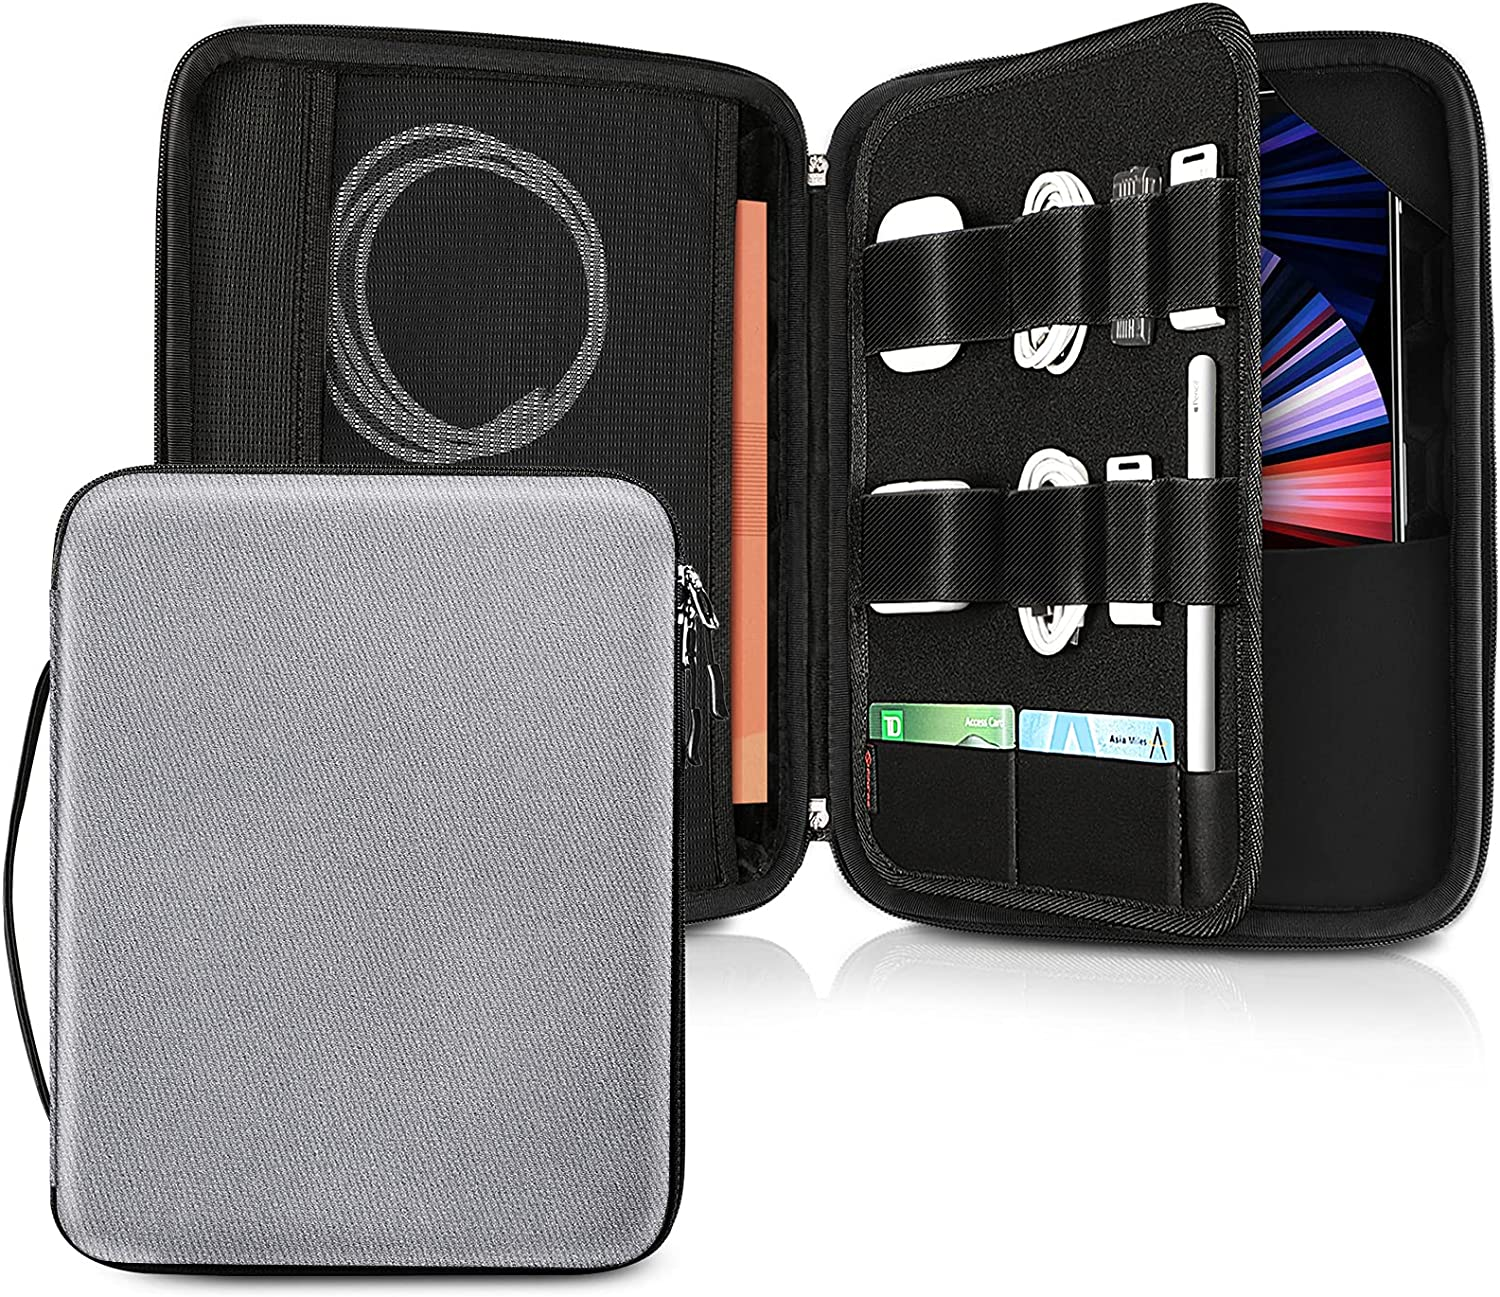 FINPAC Hard Shell Tablet Sleeve Case 12.9-inch for sold out Pro iPad 3rd Low price